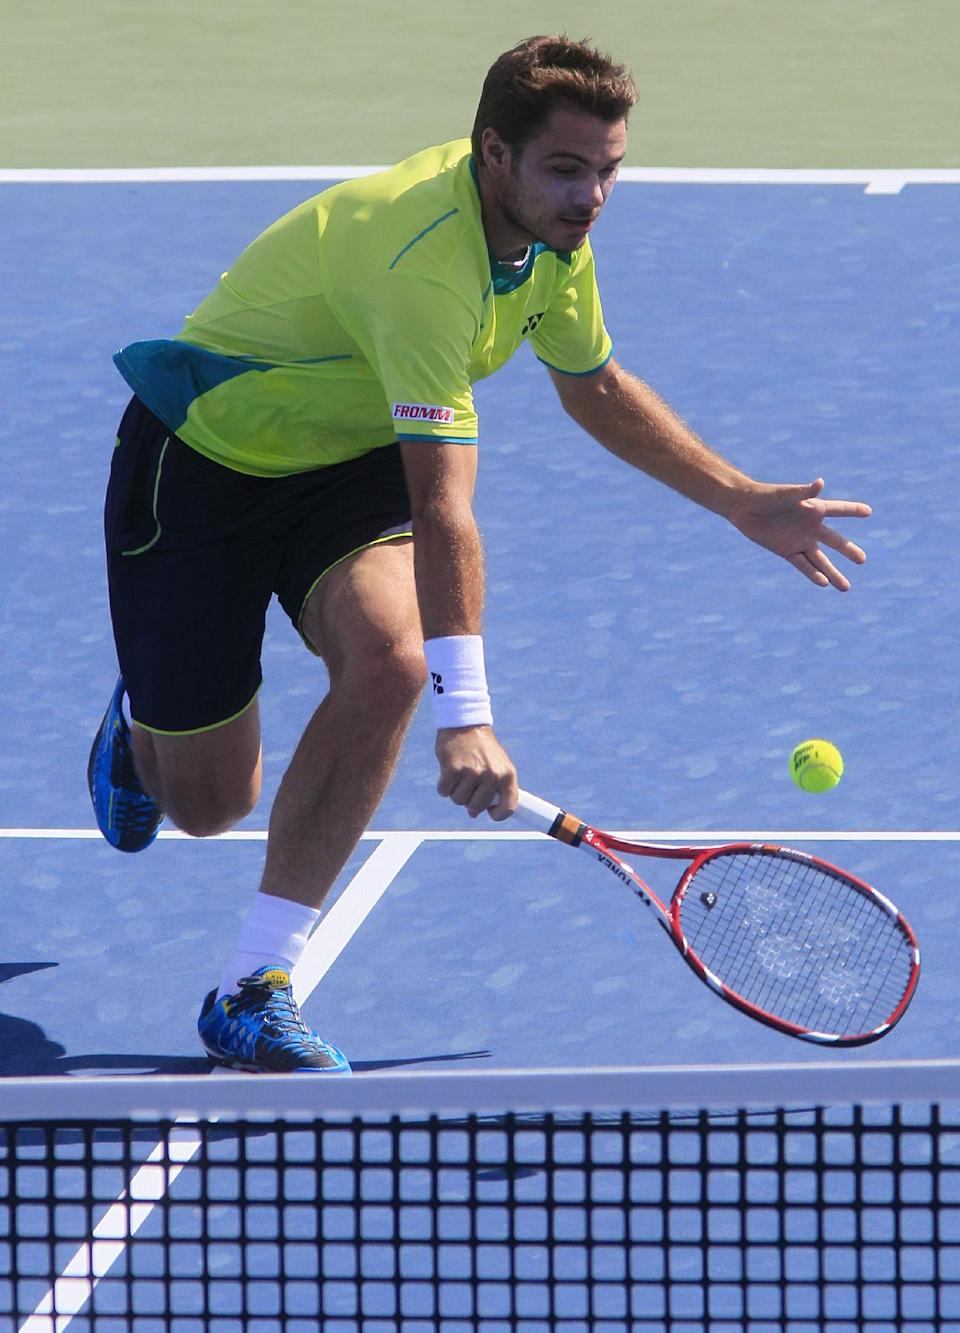 Stanislas Wawrinka, from Switzerland, volleys against Milos Raonic, from Canada, during a quarterfinal at the Western & Southern Open tennis tournament on Friday, Aug. 17, 2012, in Mason, Ohio. (AP Photo/Al Behrman)